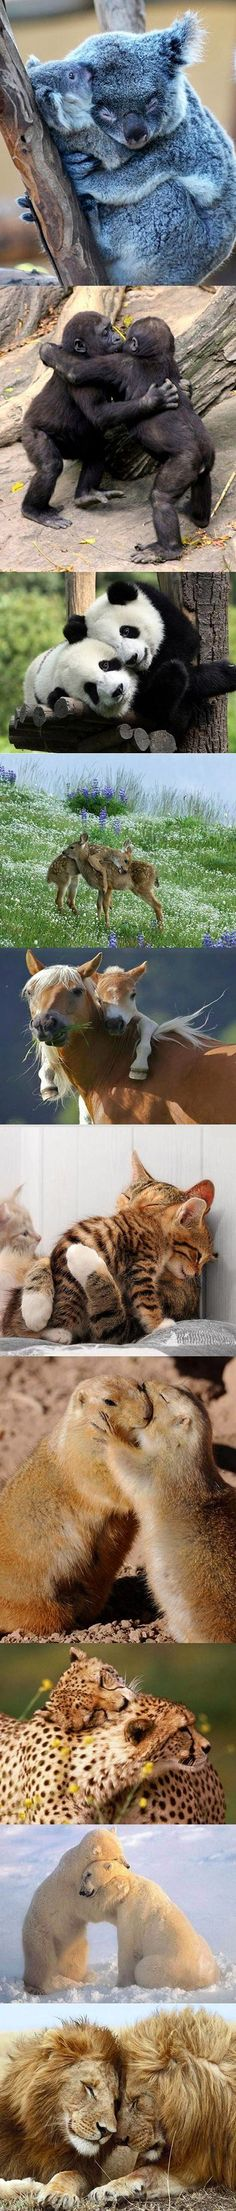 Everyone needs a hug at one time or another, including these animals.